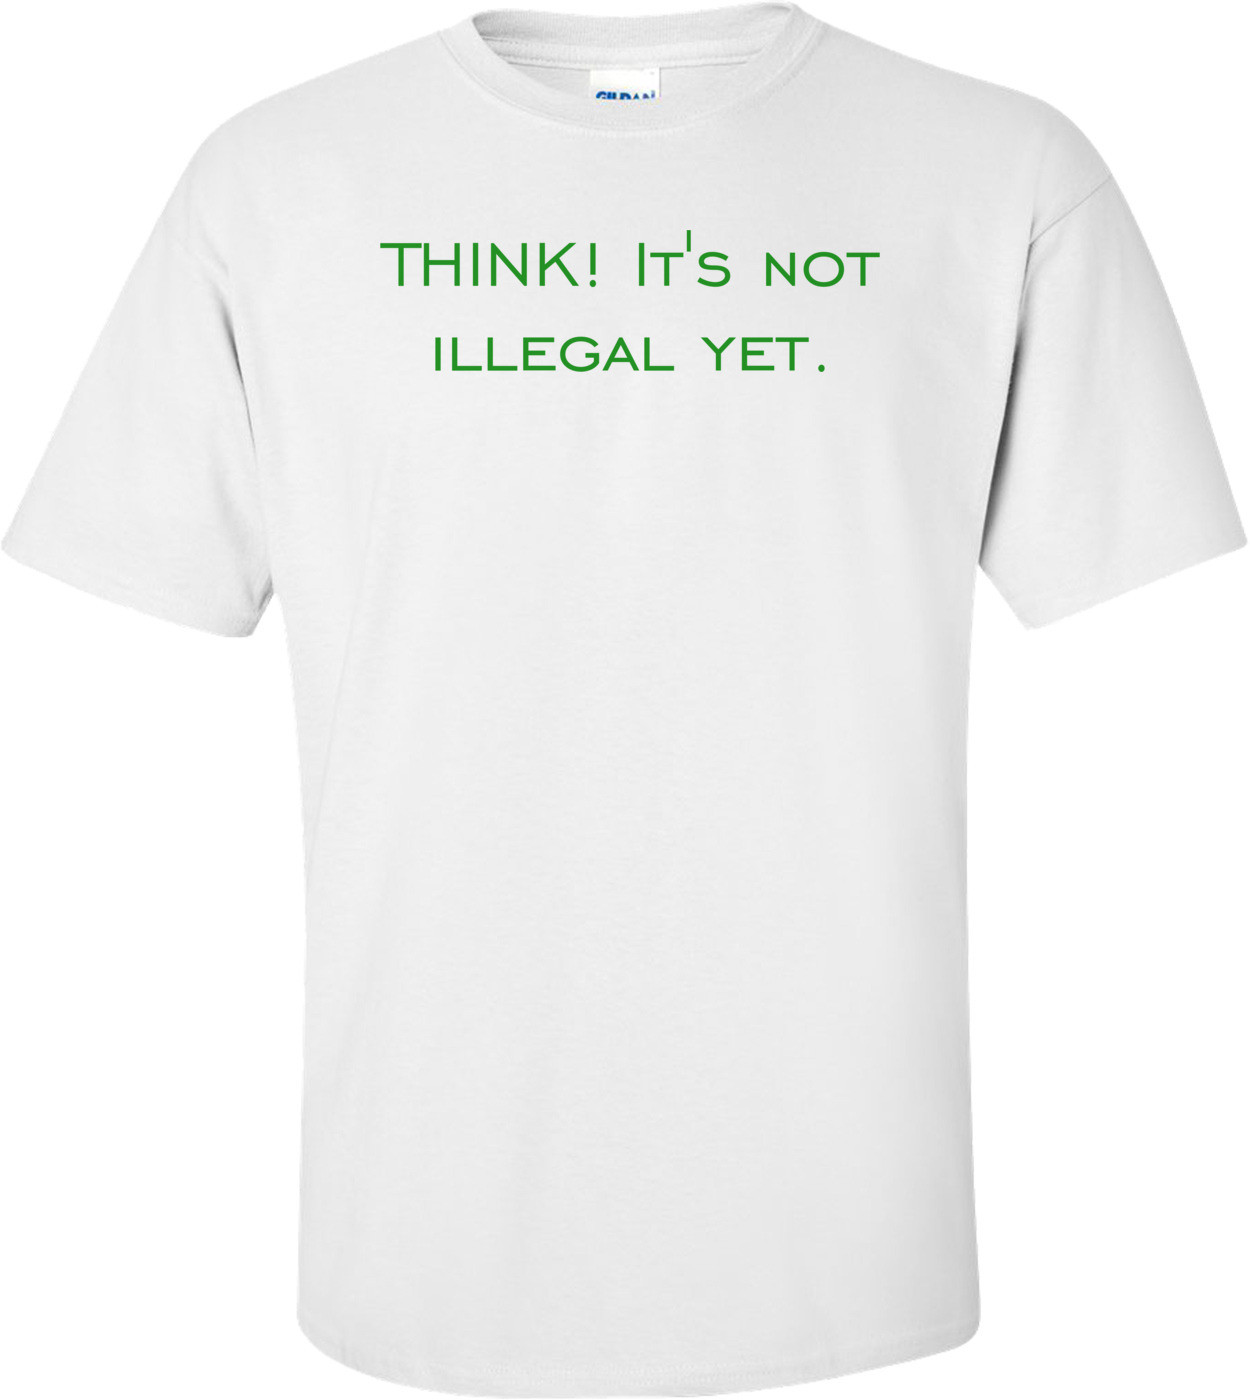 THINK! It's not illegal yet. Shirt